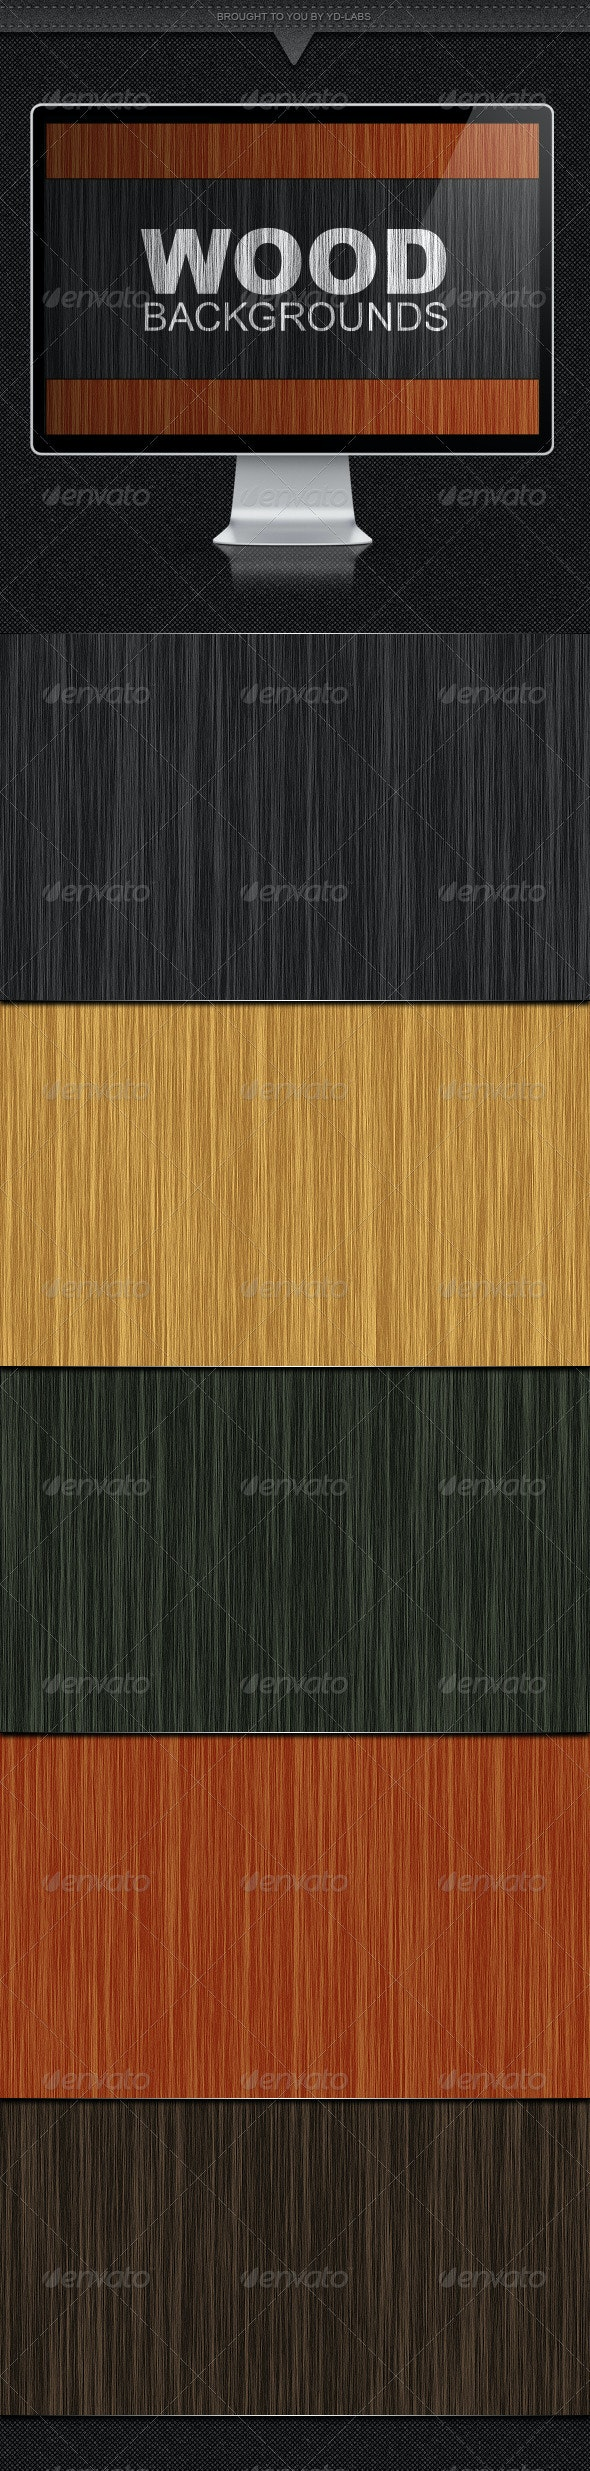 5 Wood Backgrounds - Backgrounds Graphics